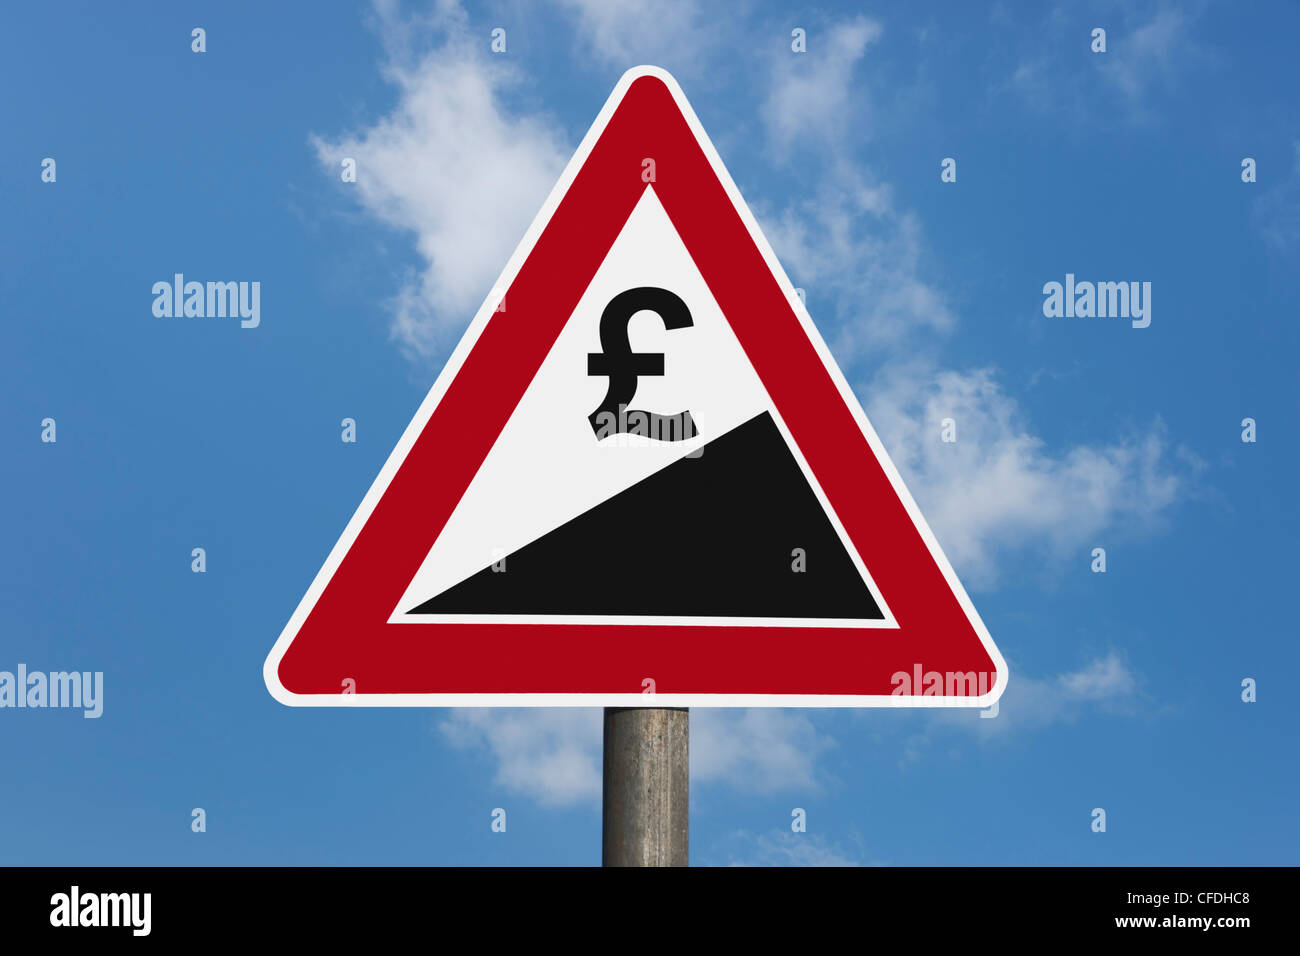 Detail photo of a danger sign 'Upward gradient' with a Pound currency sign, background sky. - Stock Image